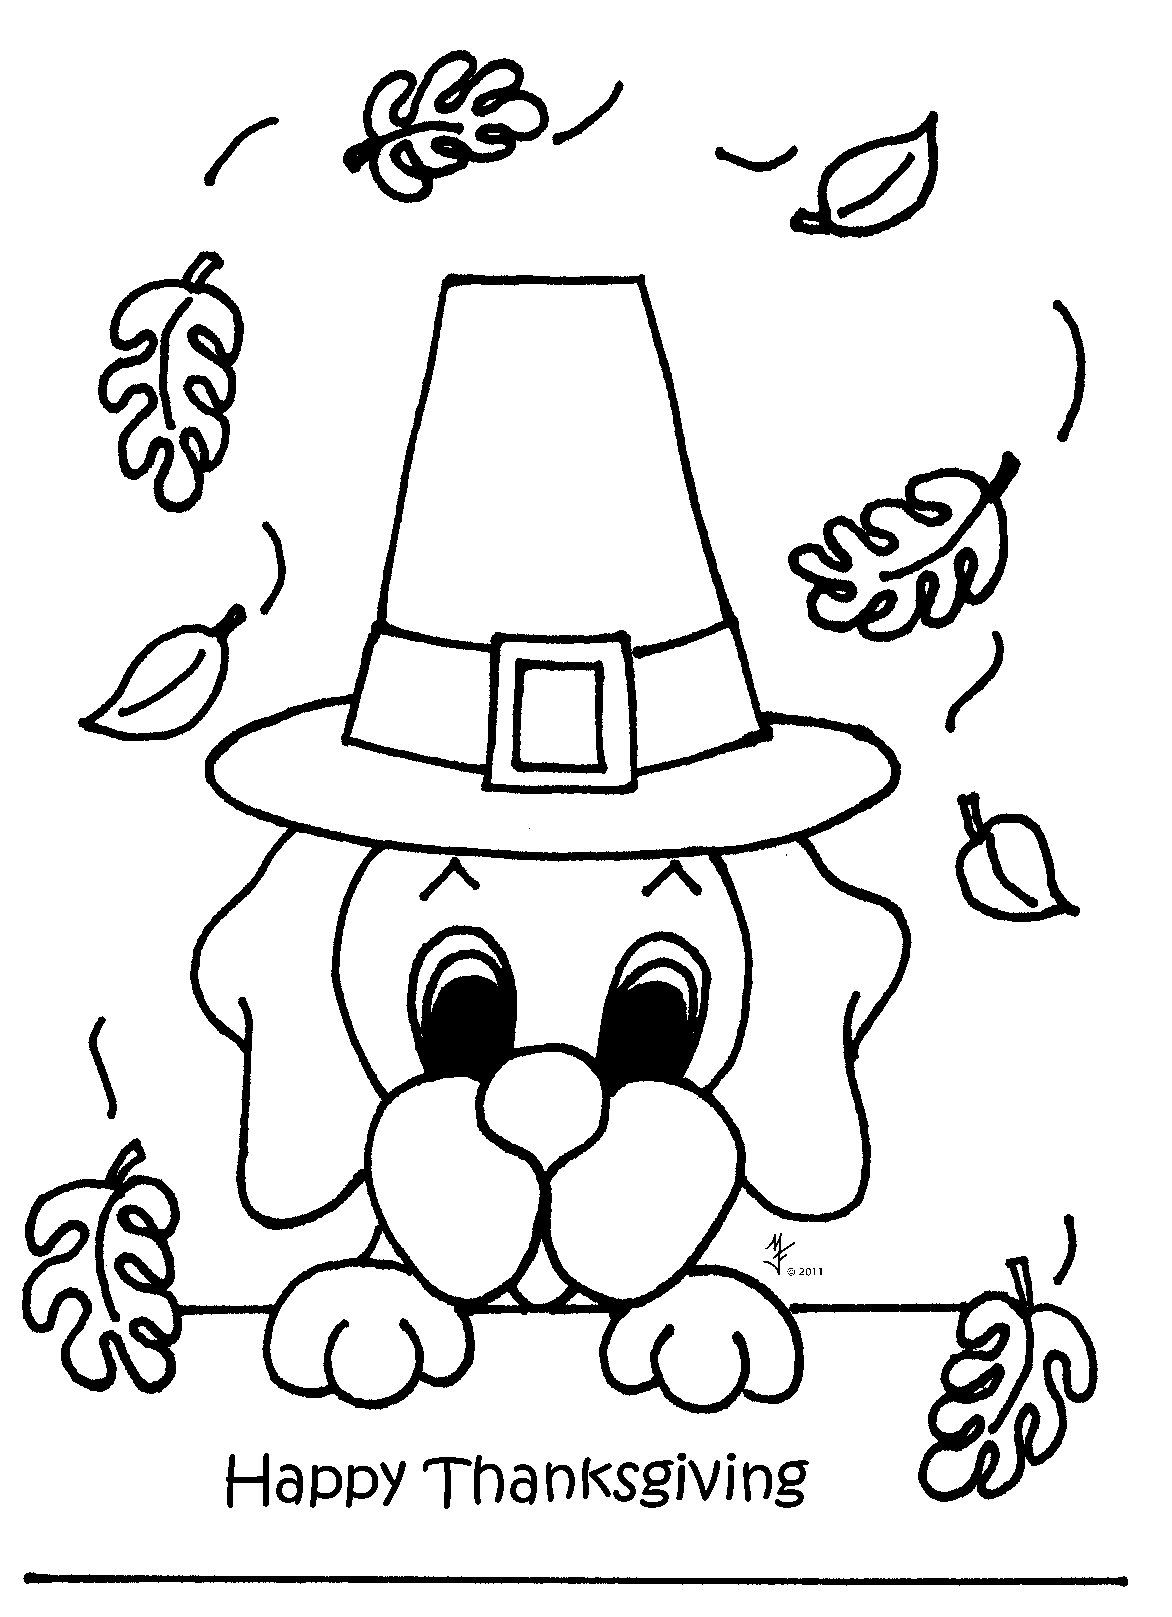 Nice November Coloring Pages Fillcoloringpages Mcoloring